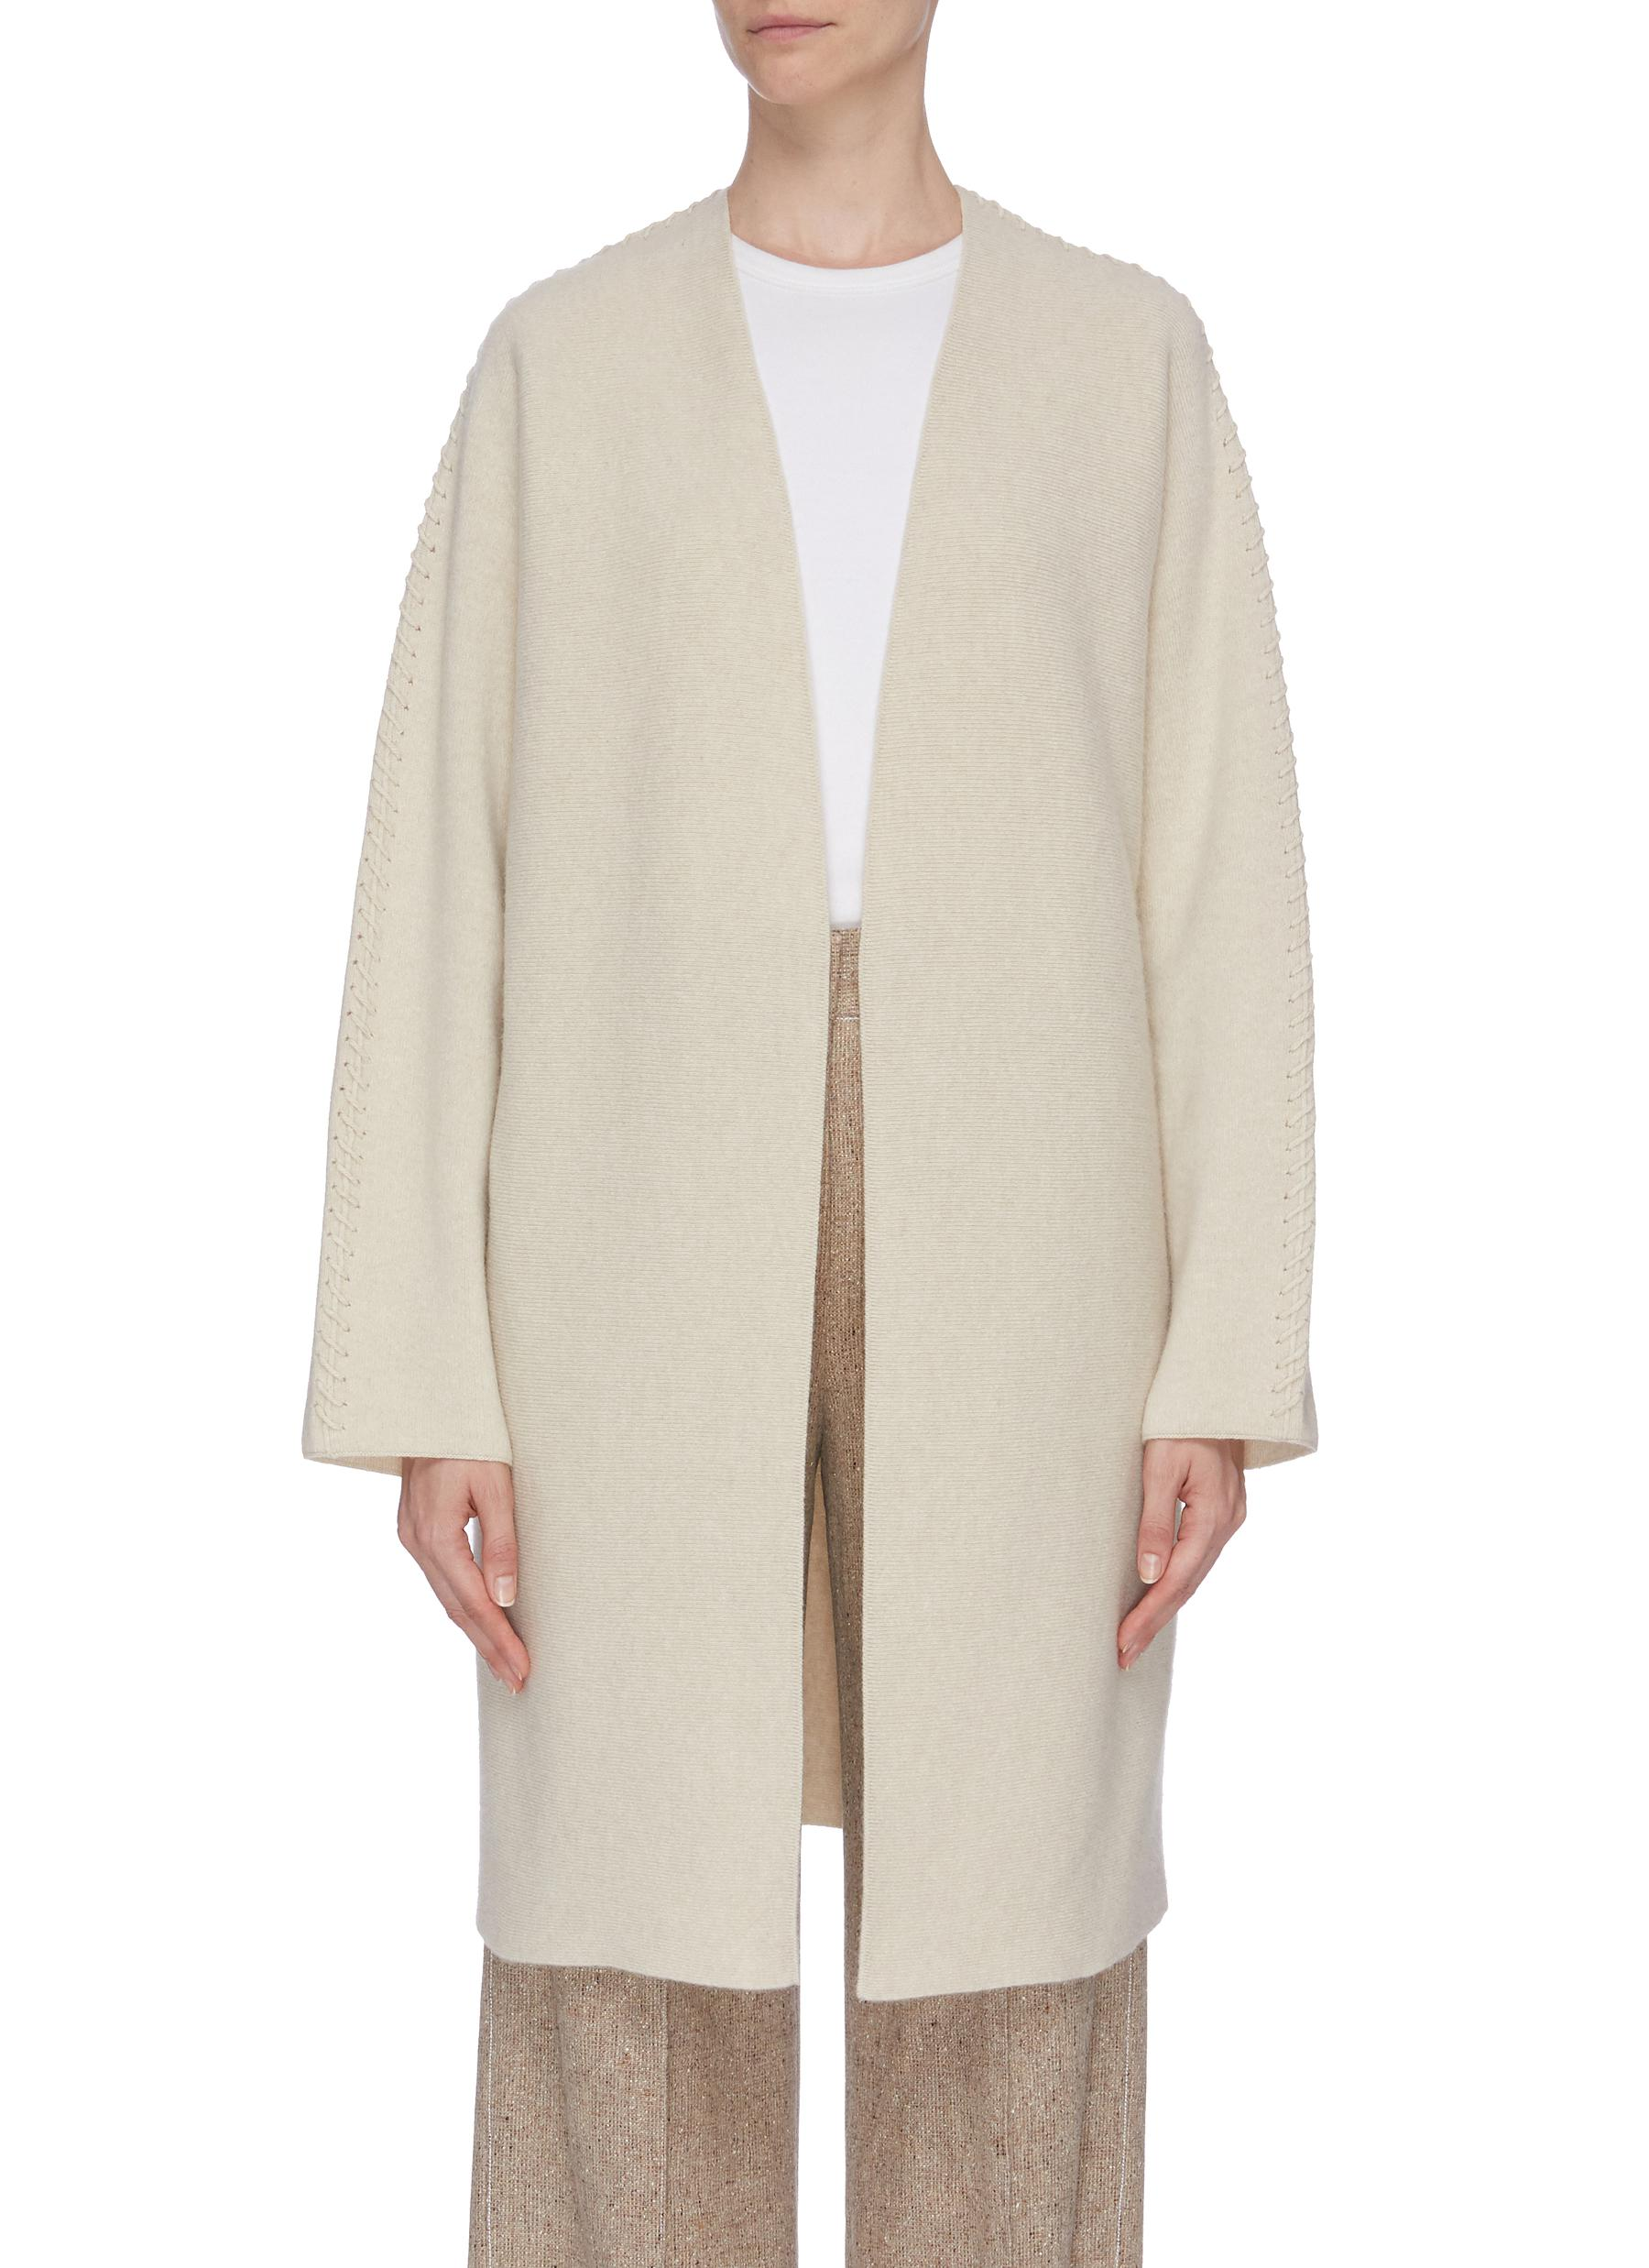 Whipstitch open coat by Theory